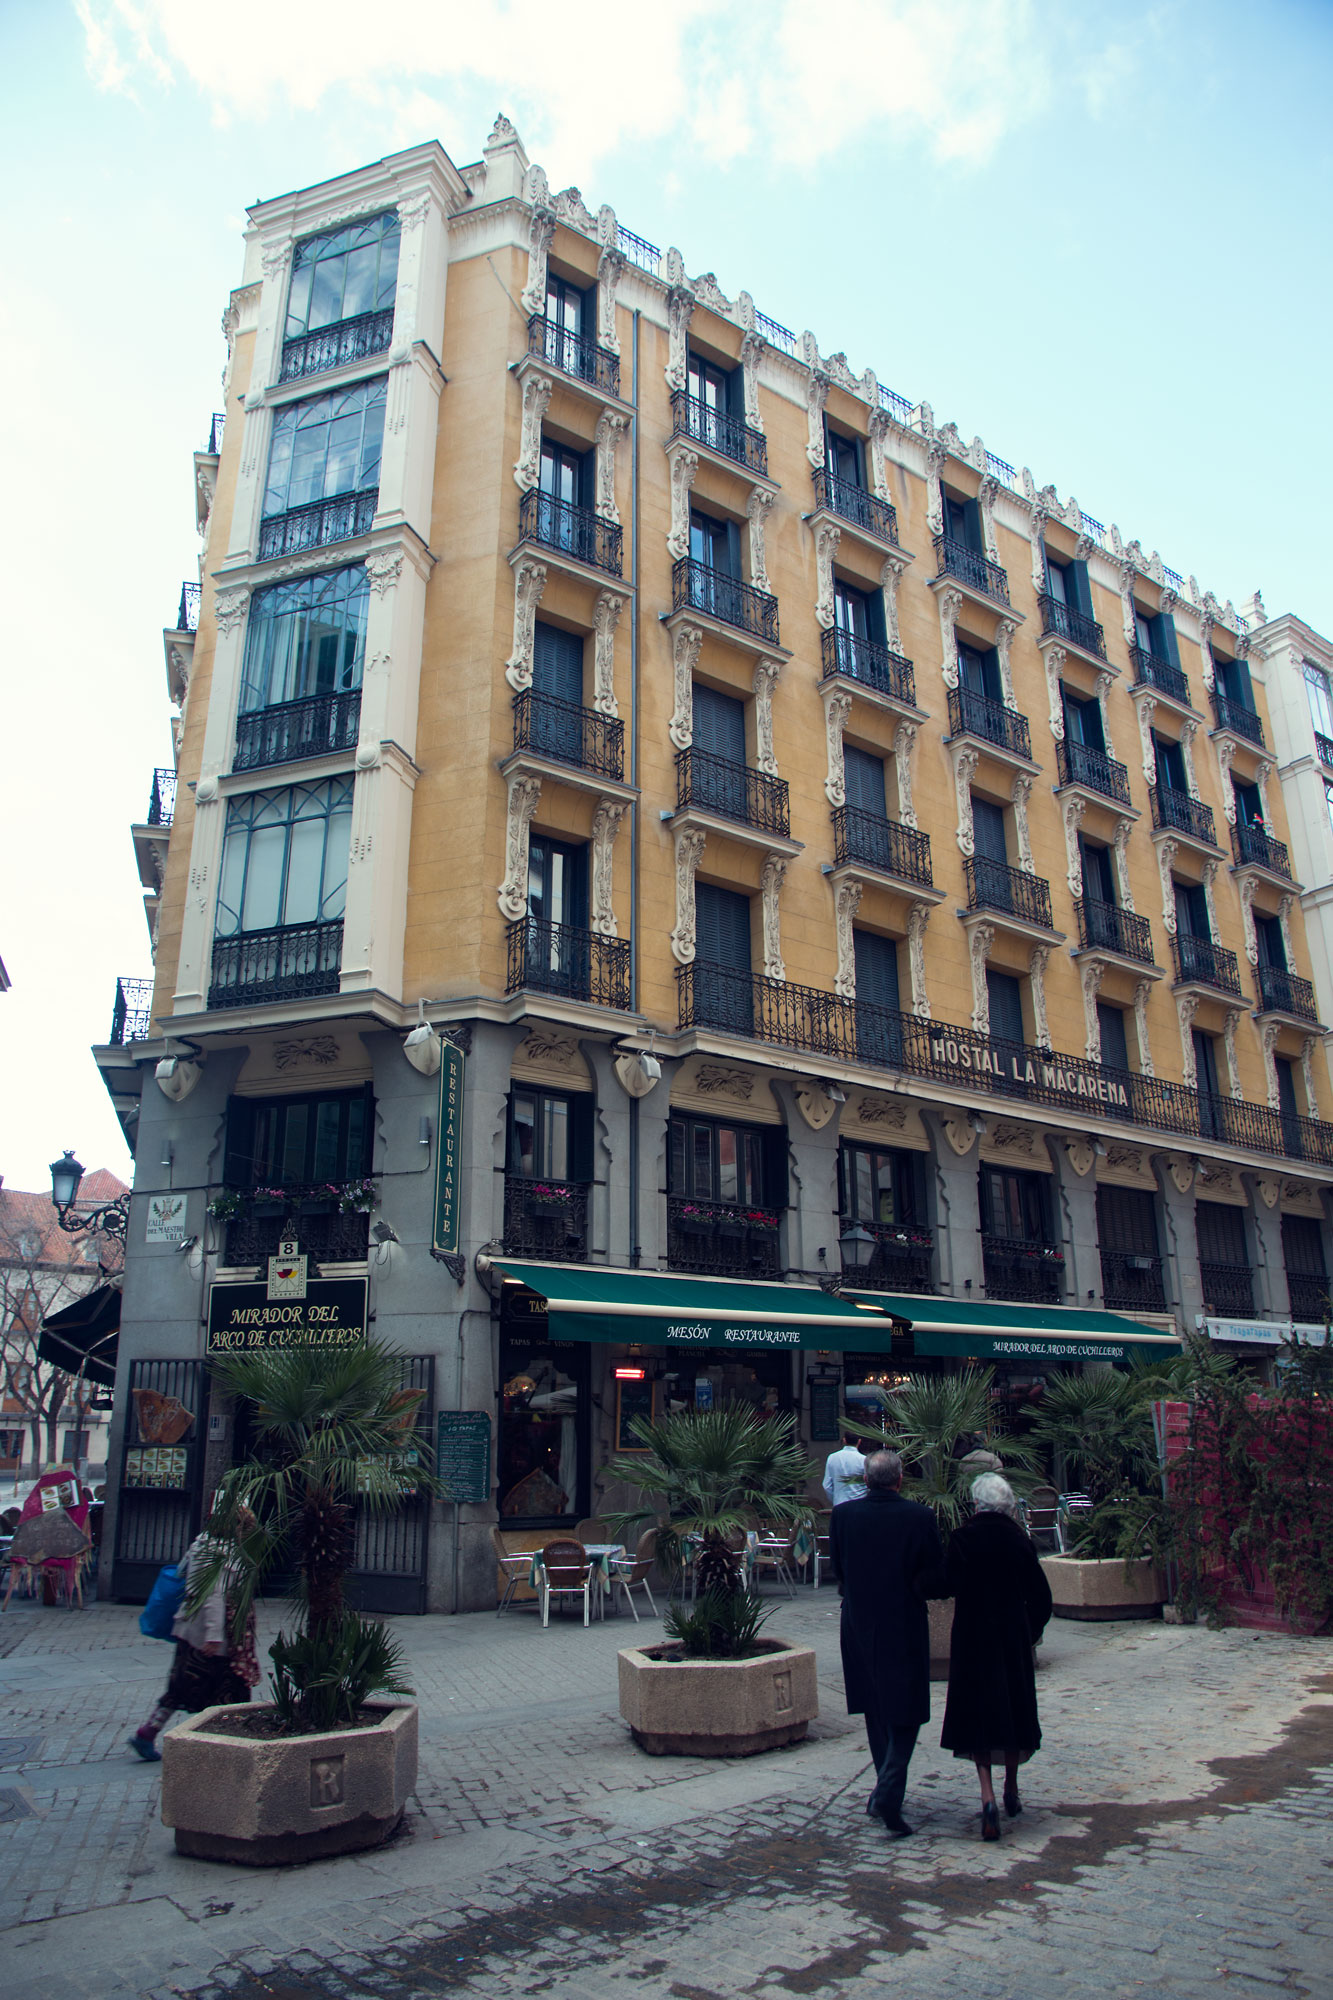 The buildings on the outskirts of Plaza Mayor, Madrid.